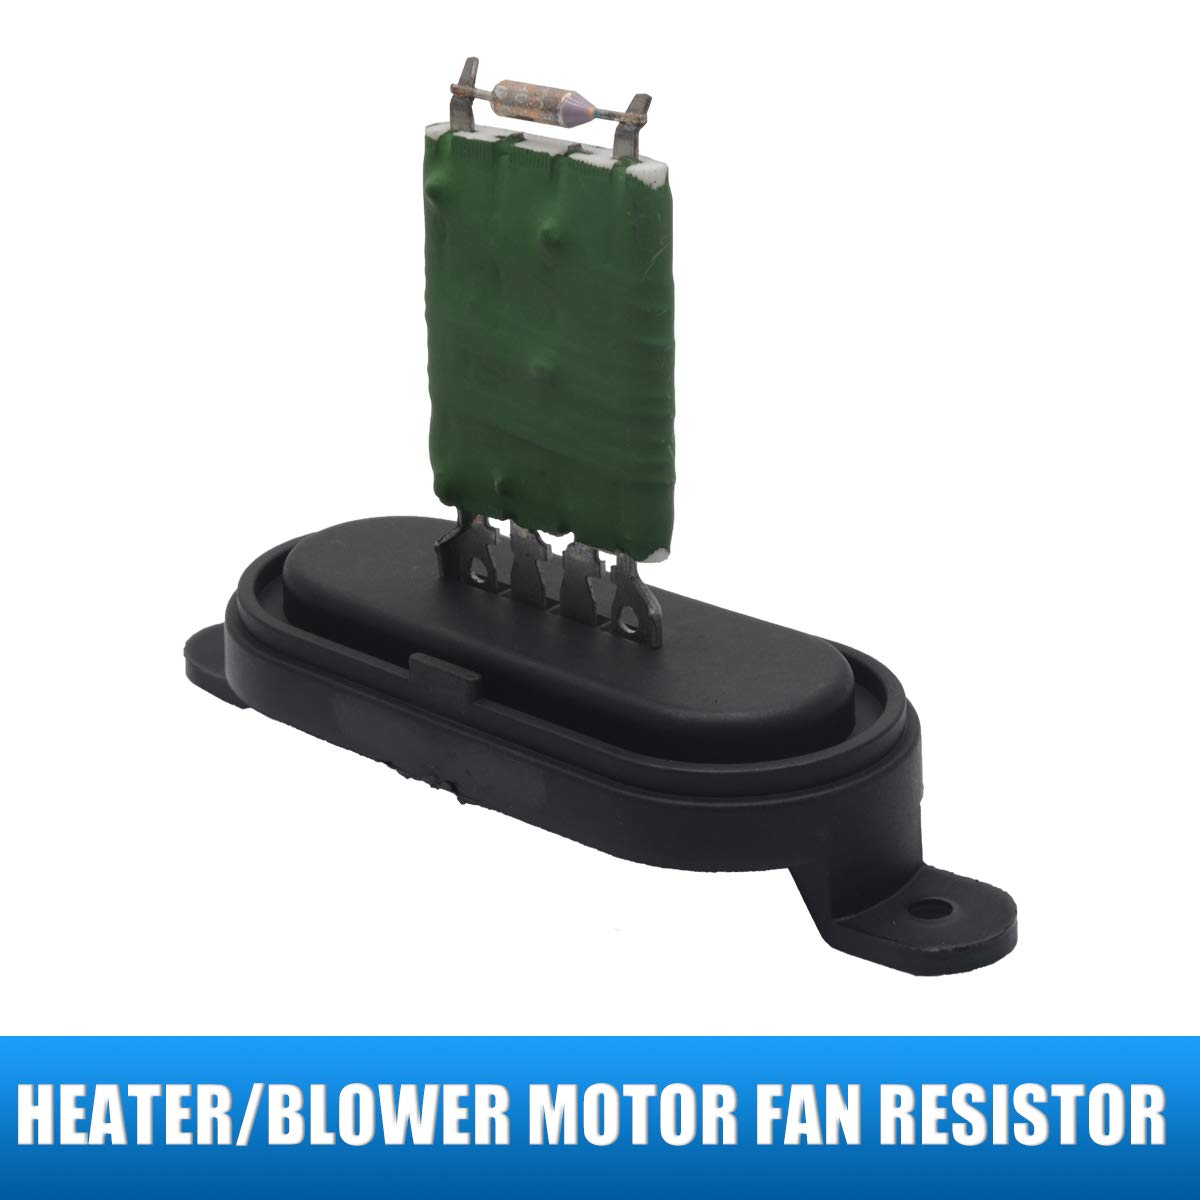 MASO Heater Blower Fan Resistor 9180020